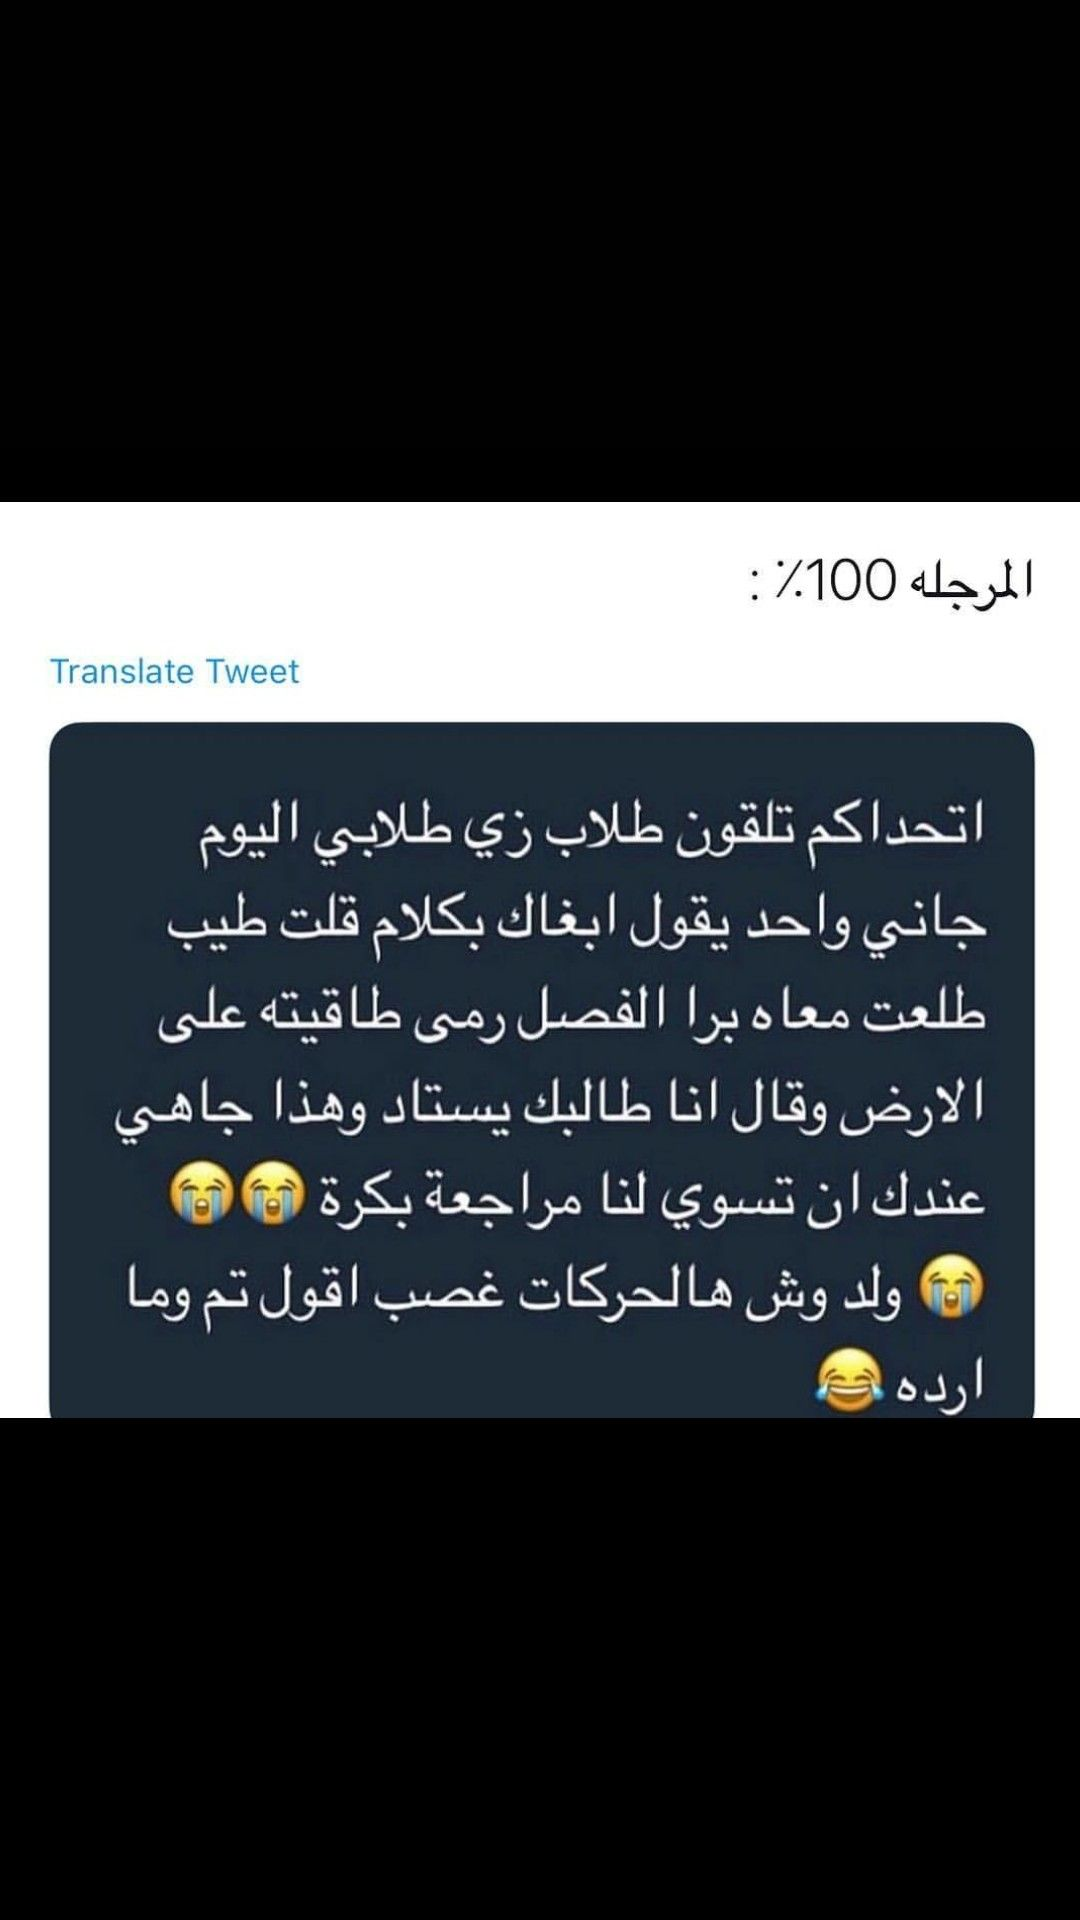 Pin By Jojo On نكت مضحكه Fun Quotes Funny Weird Words Funny Words